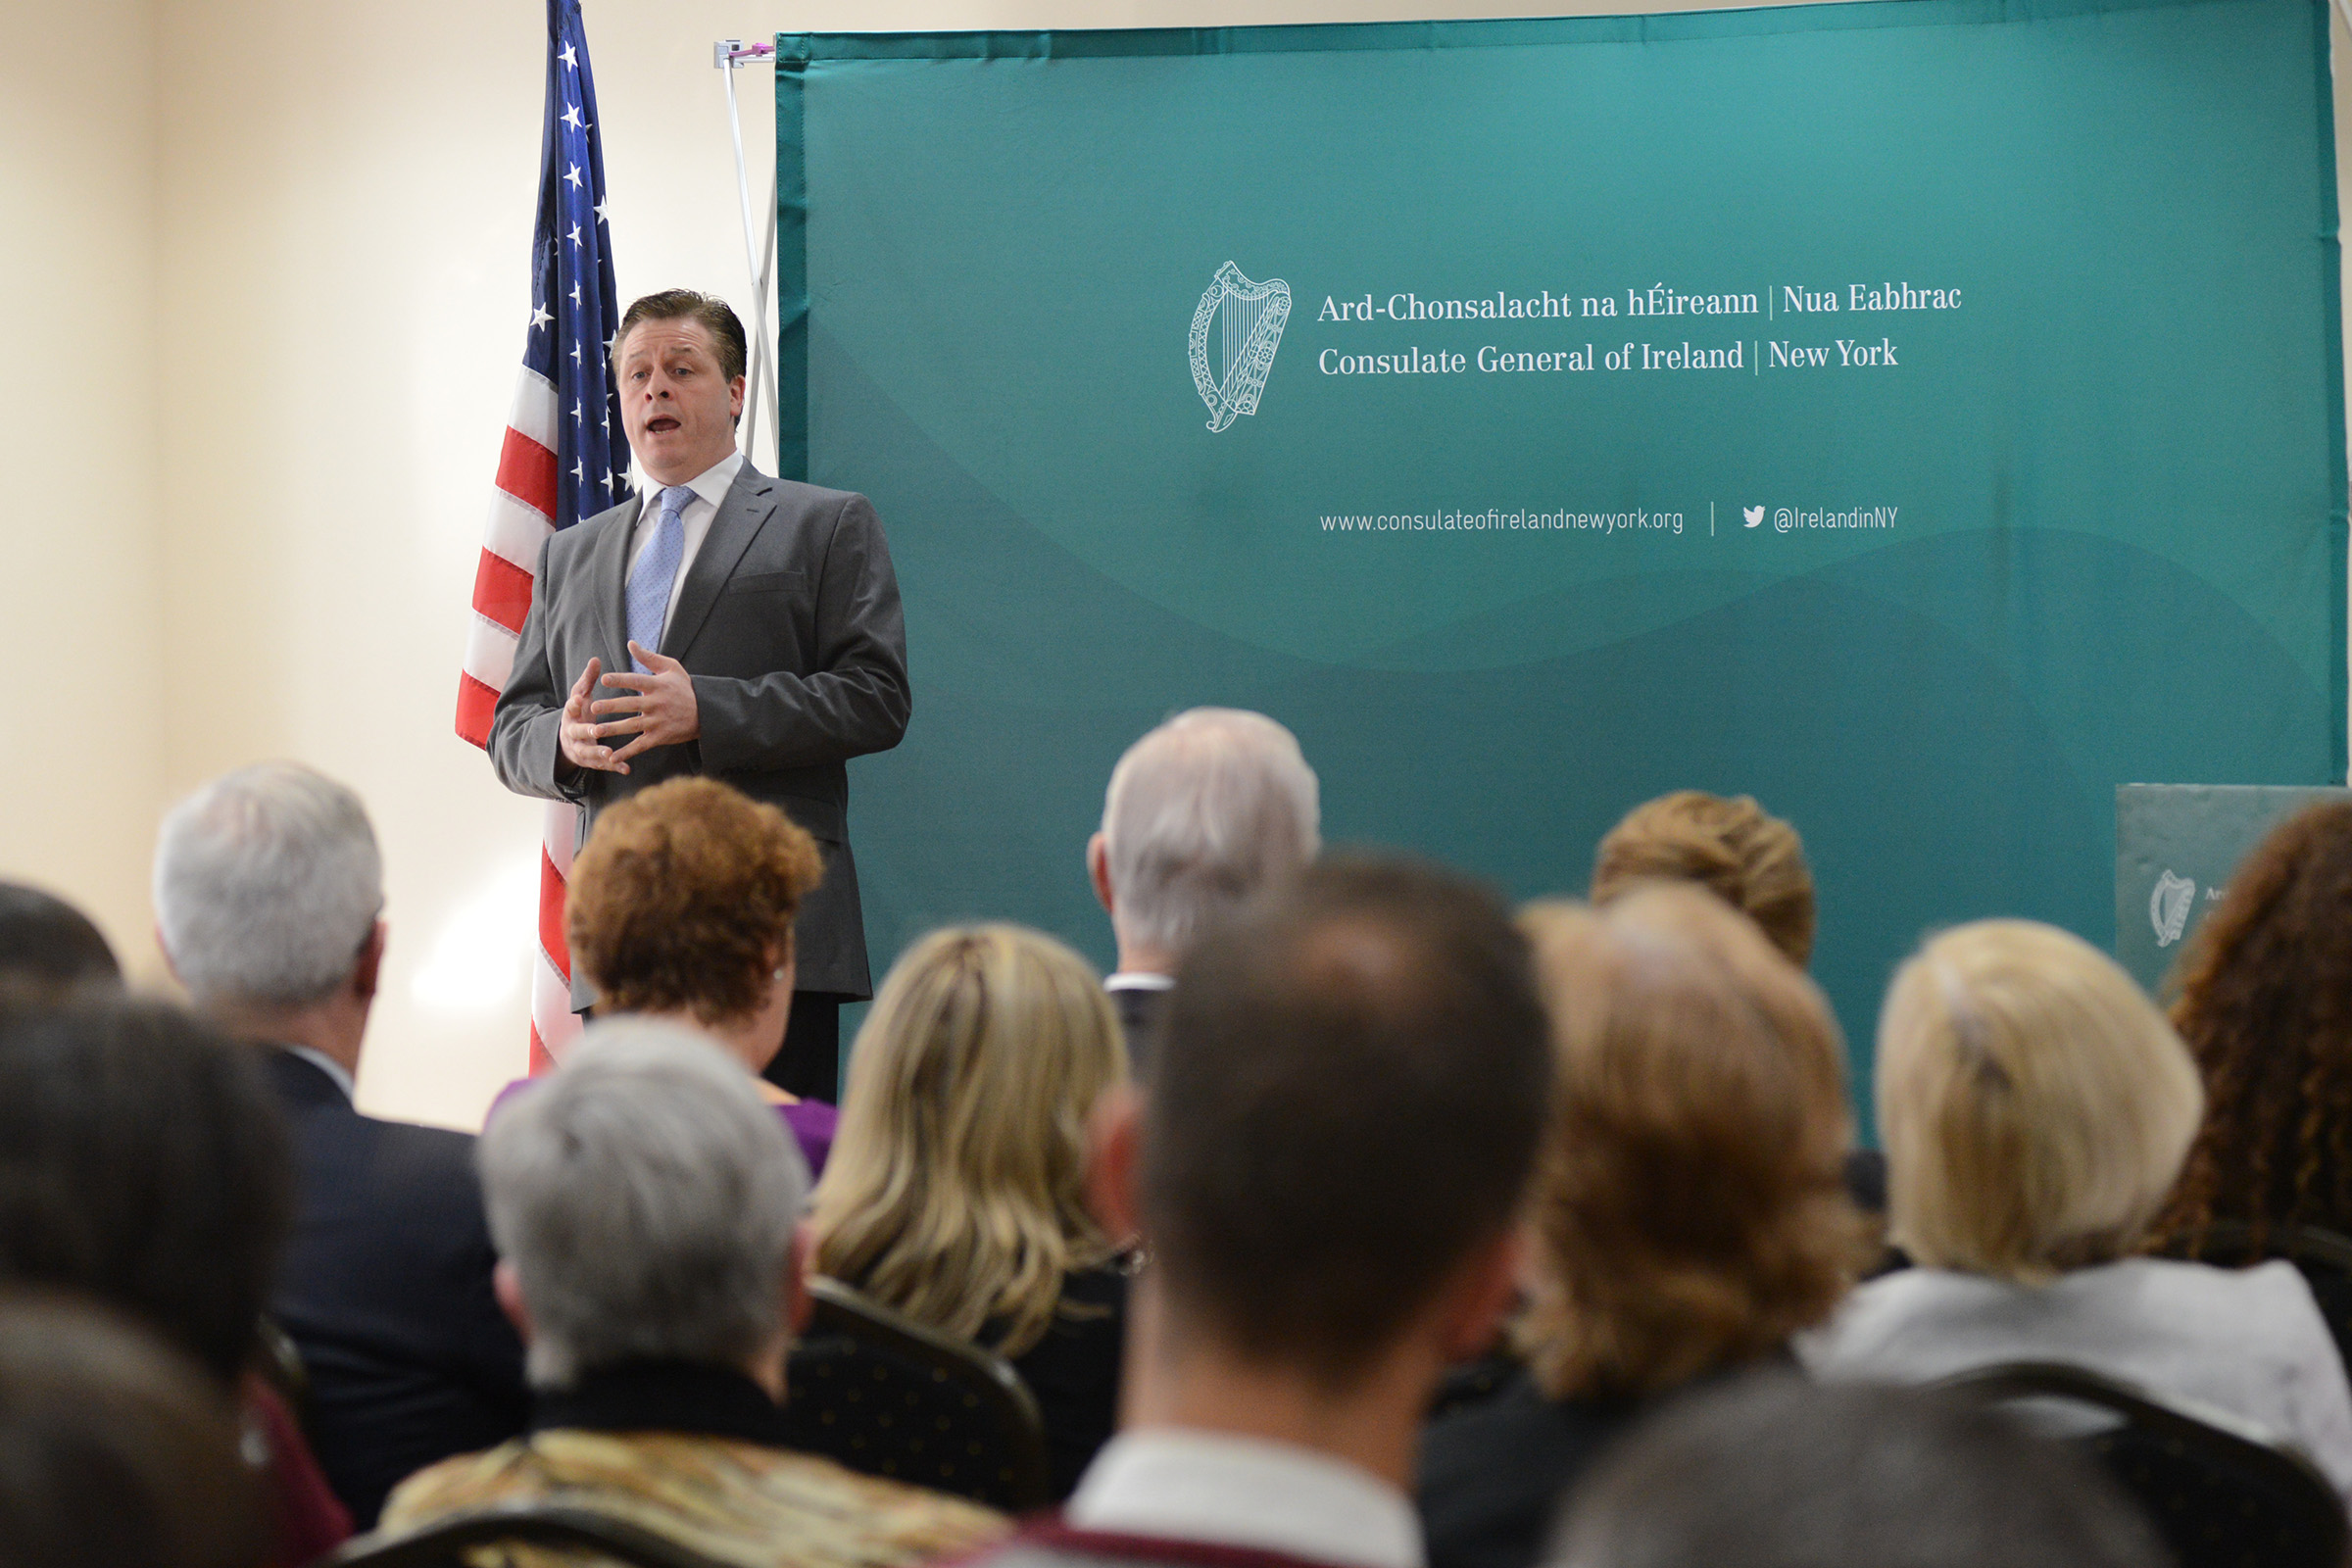 Irish Tenor Anthony Kearns sings at the event with Minister for Foreign Affairs and Trade Charlie Flanagan launching the 2016 Centenary Programme in the United States of America today in New York at the Consulate of Ireland. (Photo: James Higgins)